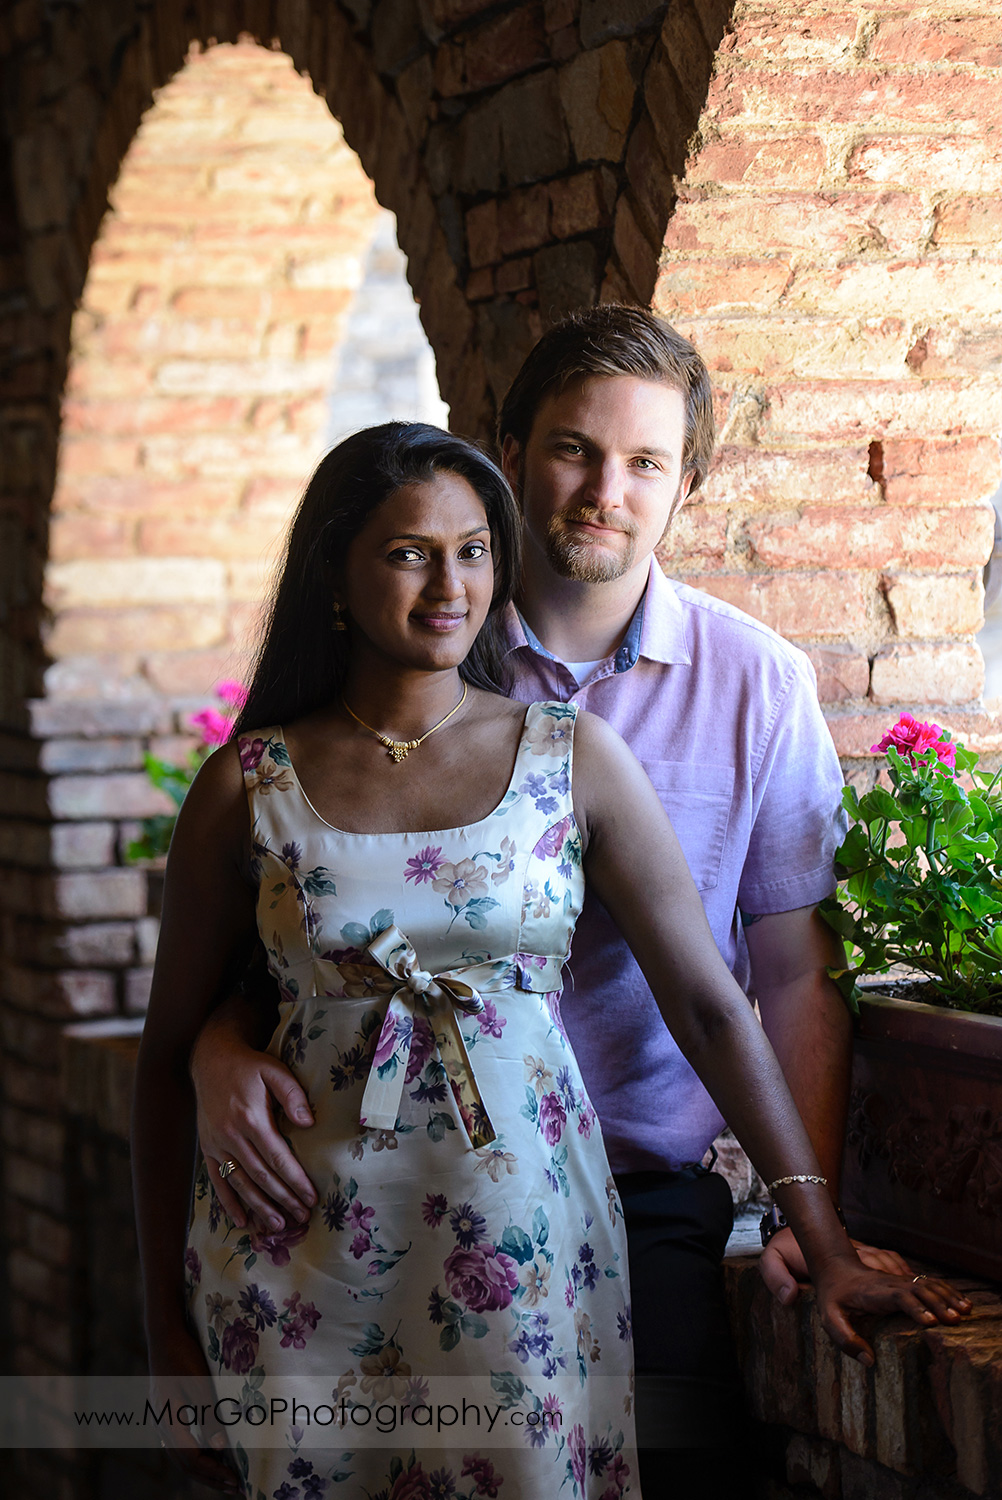 portrait of Indian woman in flower dress standing in front of man in pink shirt during engagement session at Castello di Amorosa in Calistoga